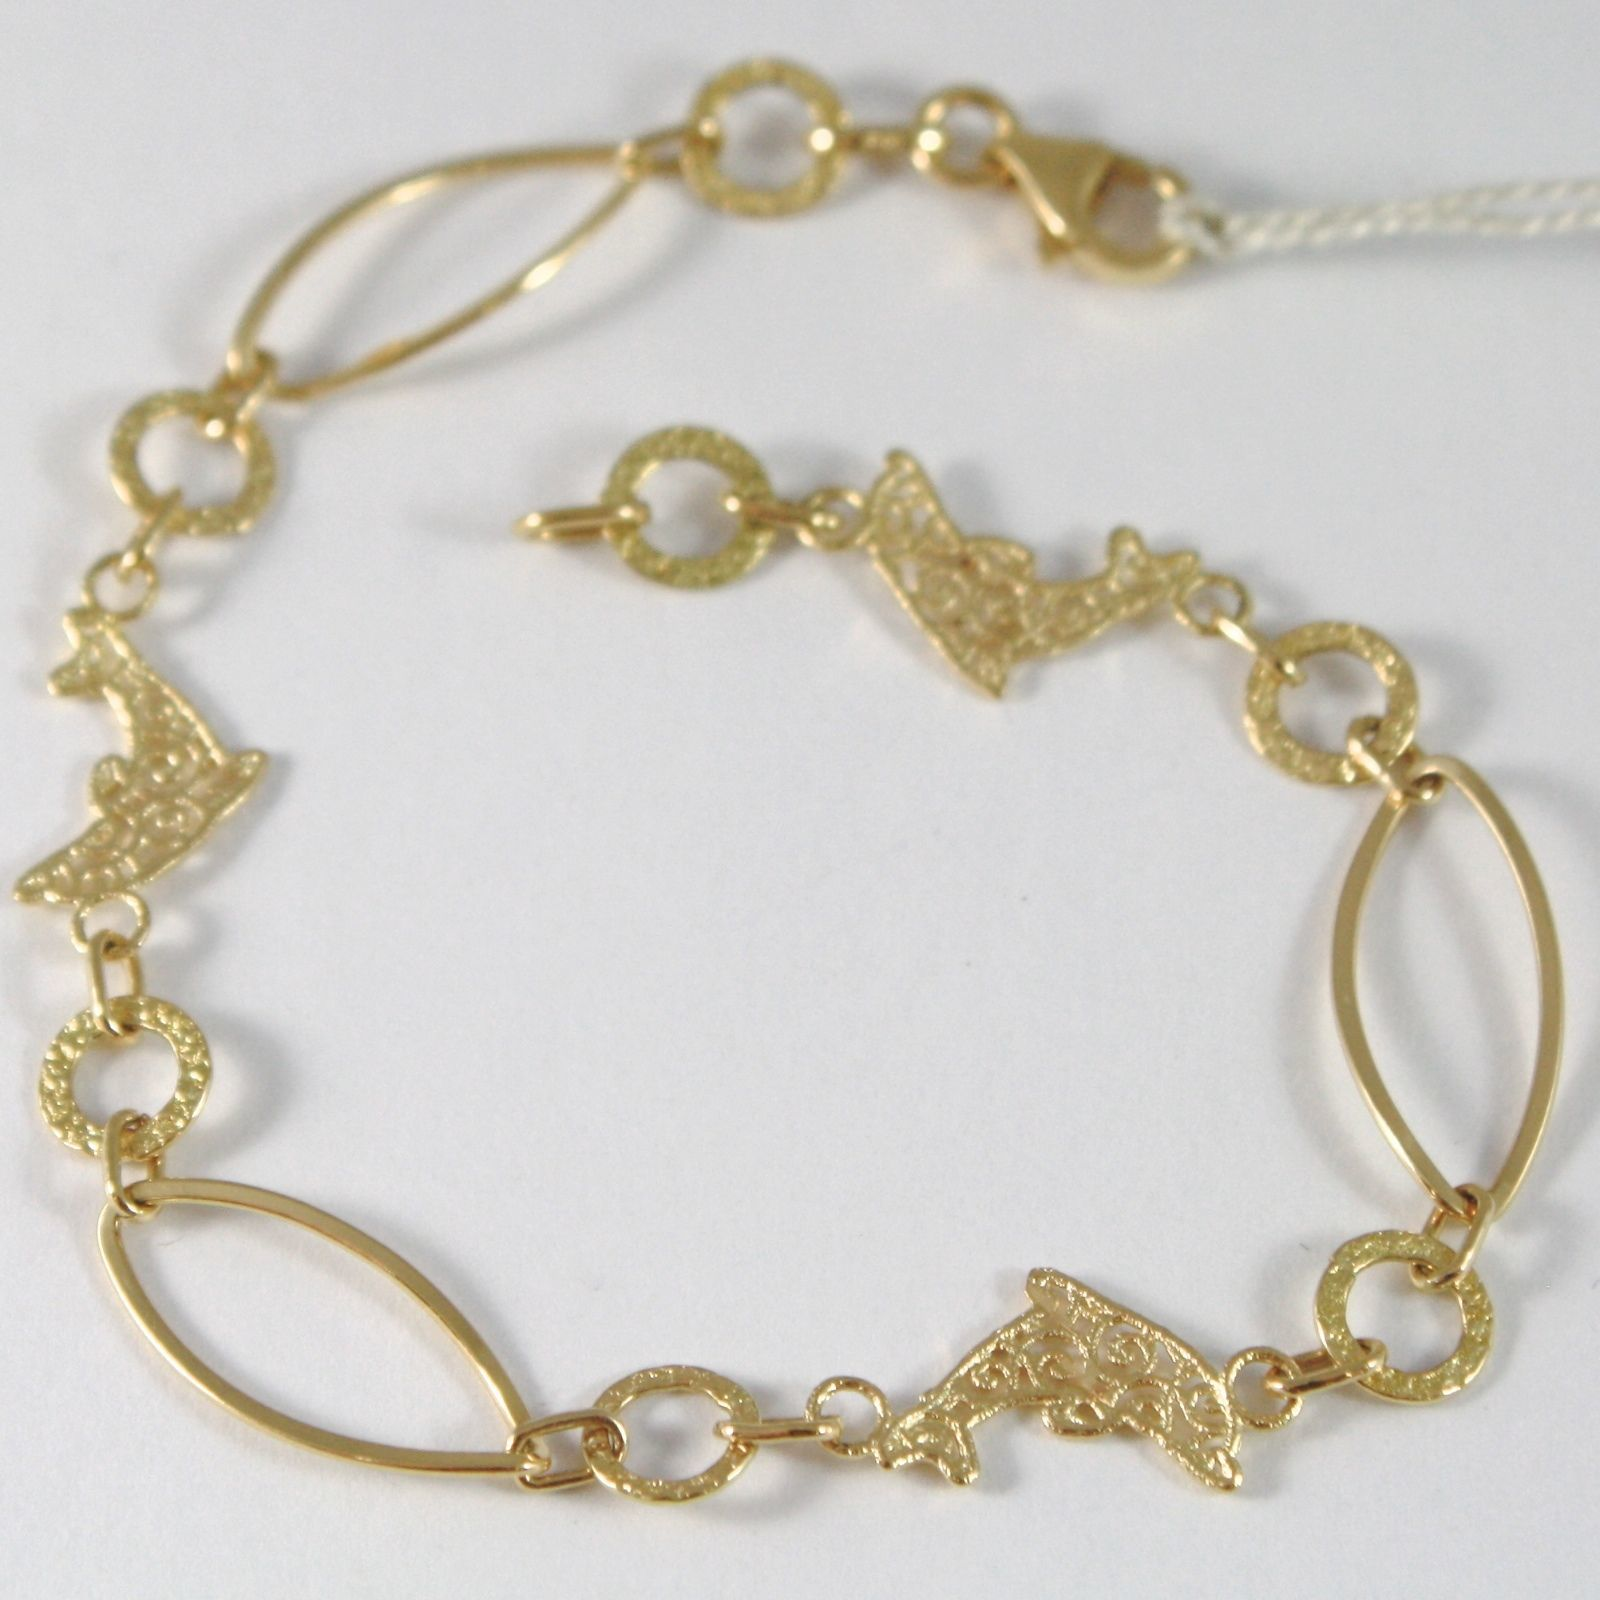 BRACELET YELLOW GOLD 750 18K WITH DOLPHINS SATIN WORKED, 18 CM LENGTH